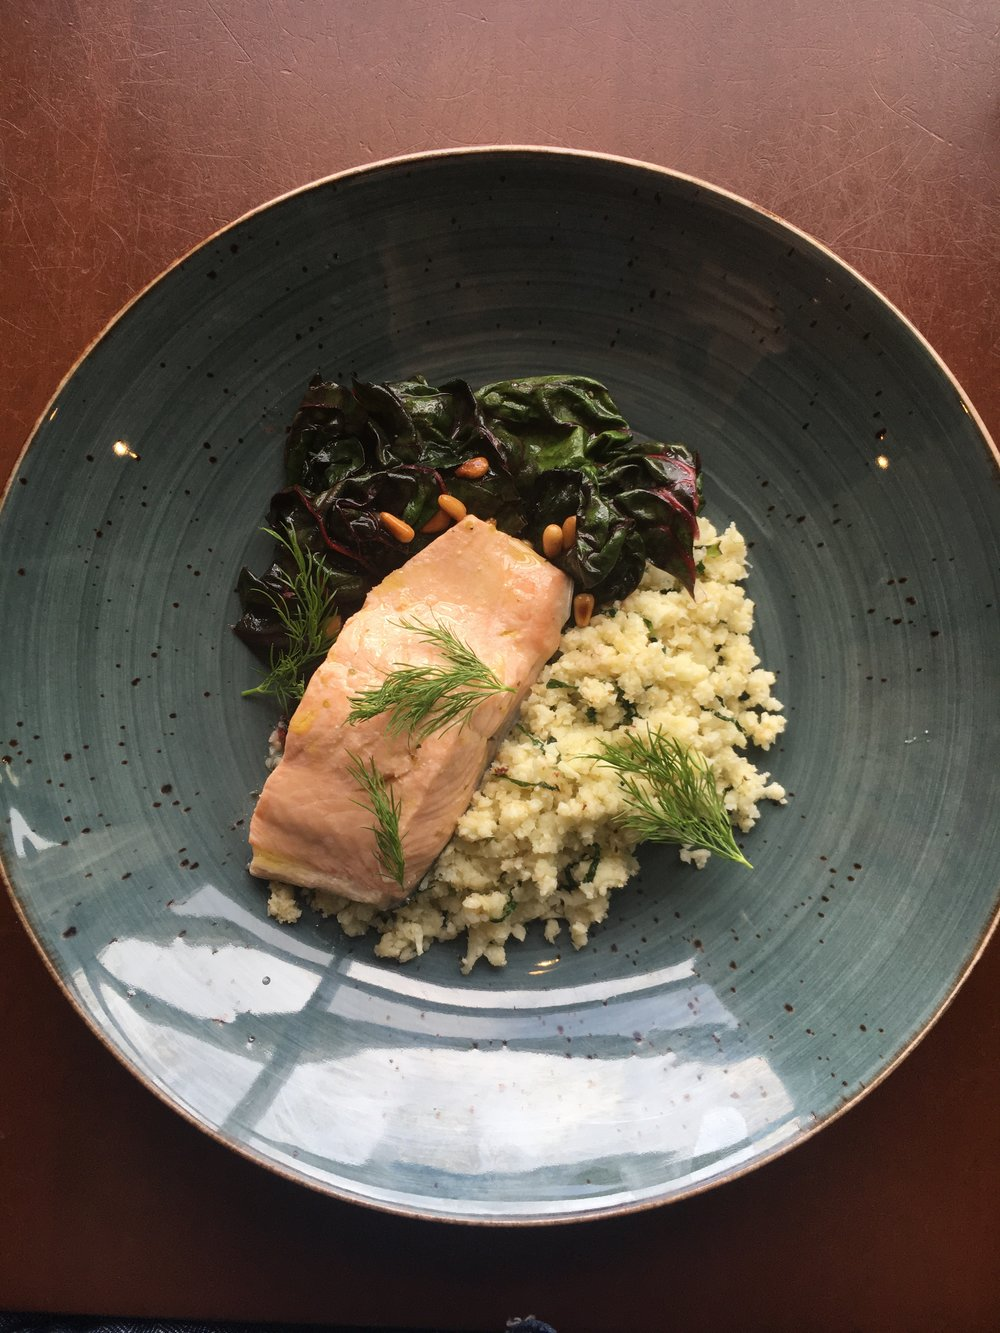 "KETO COOKING WITH CHEF RUBEN RAPETTI / POACHED SALMON WITH CAULIFLOWER ""RISOTTO"" AND SWISS CHARD by Jen Fisch via Keto In The City"